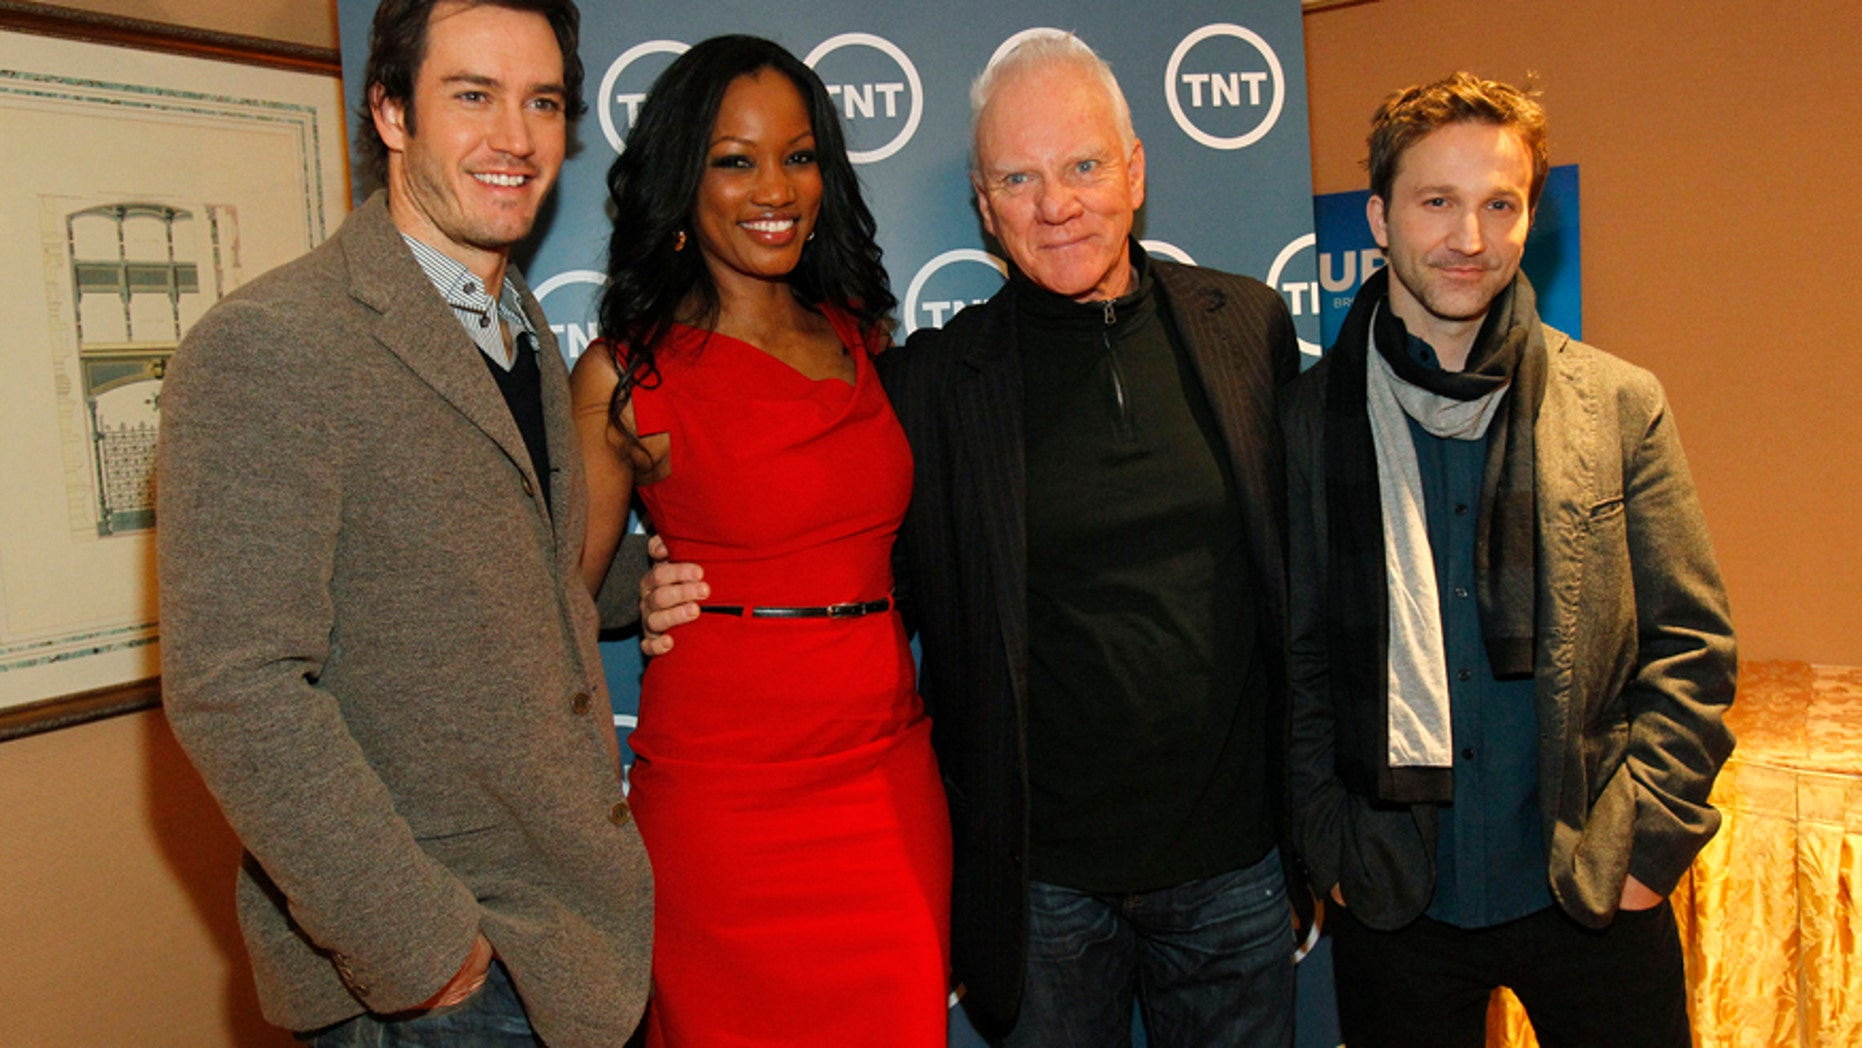 """Cast members (from L-R) Mark-Paul Gosselaar, Garcelle Beauvais, Malcolm McDowell and Breckin Meyer from the television series """"Franklin & Bash"""" pose during the Turner Broadcasting Television Critics Association winter press tour in Pasadena, California January 6, 2011."""